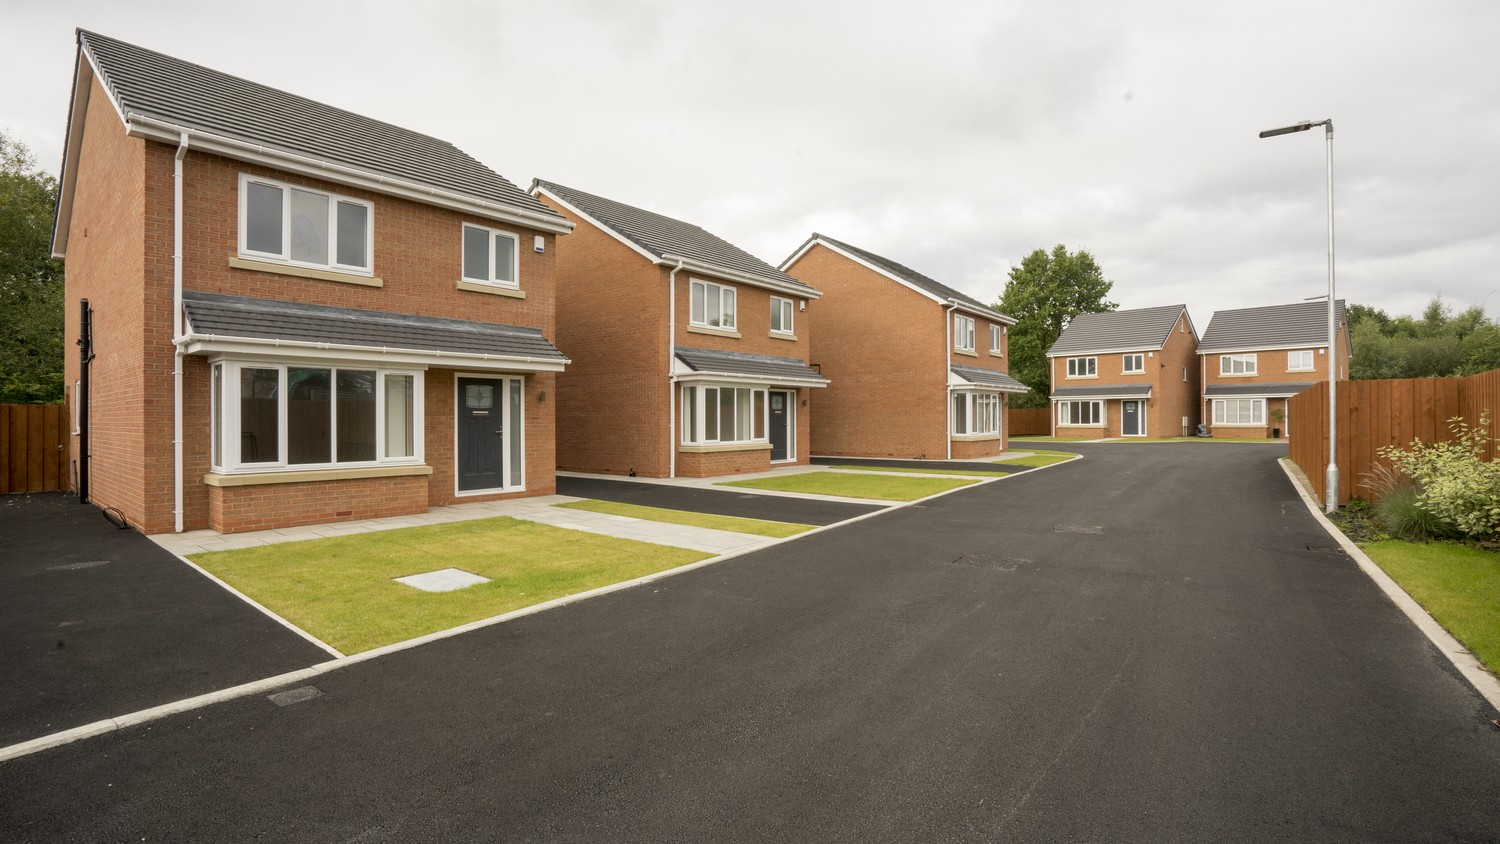 Overview of the housing development in Liverpool where we installed 5 kitchens.